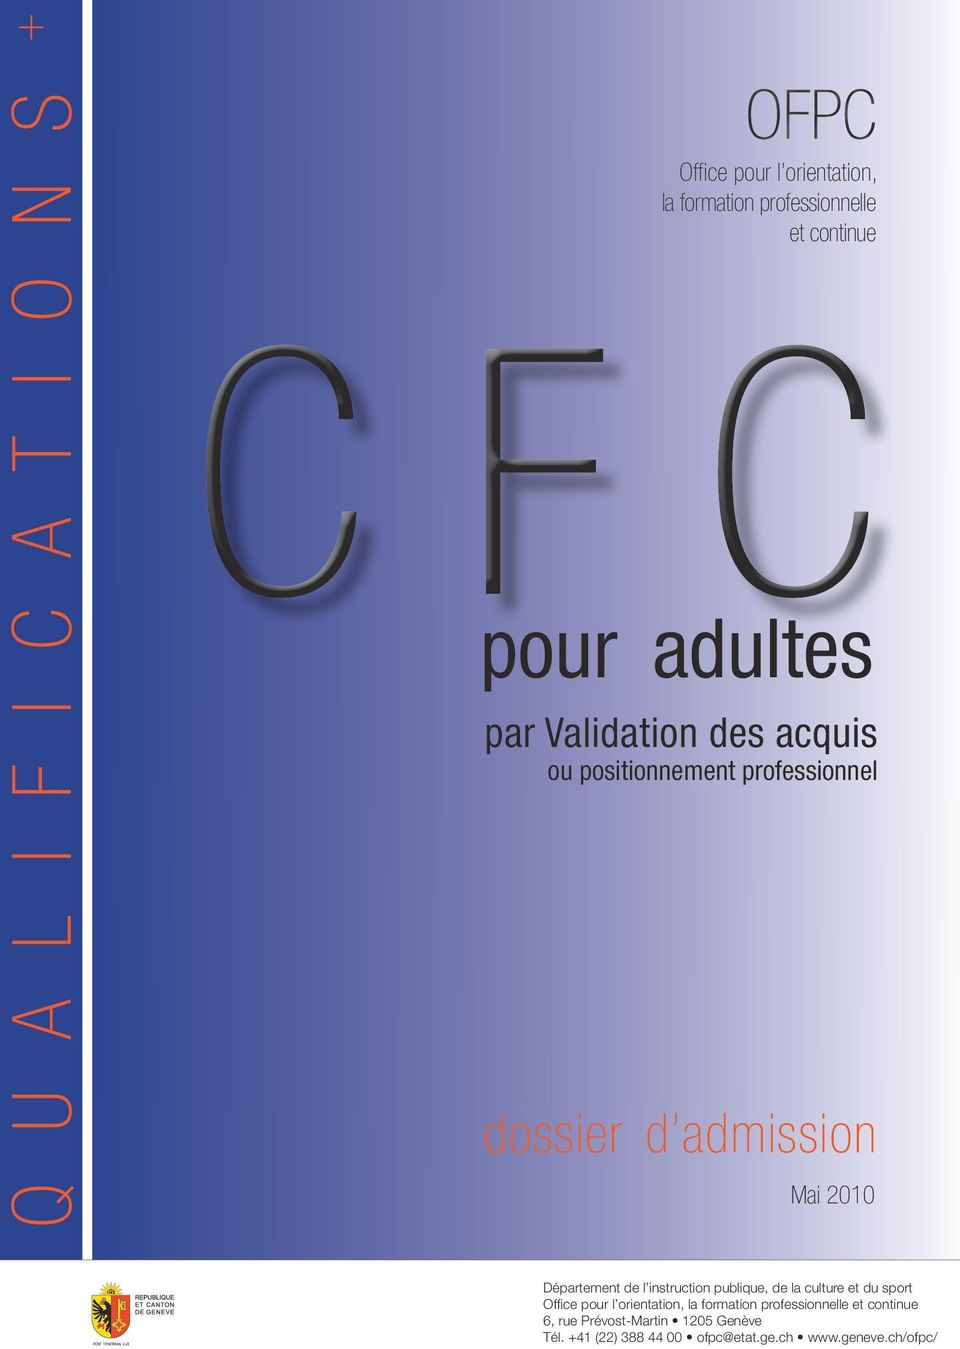 instruction publique, de la culture et du sport Office pour l orientation, la formation professionnelle